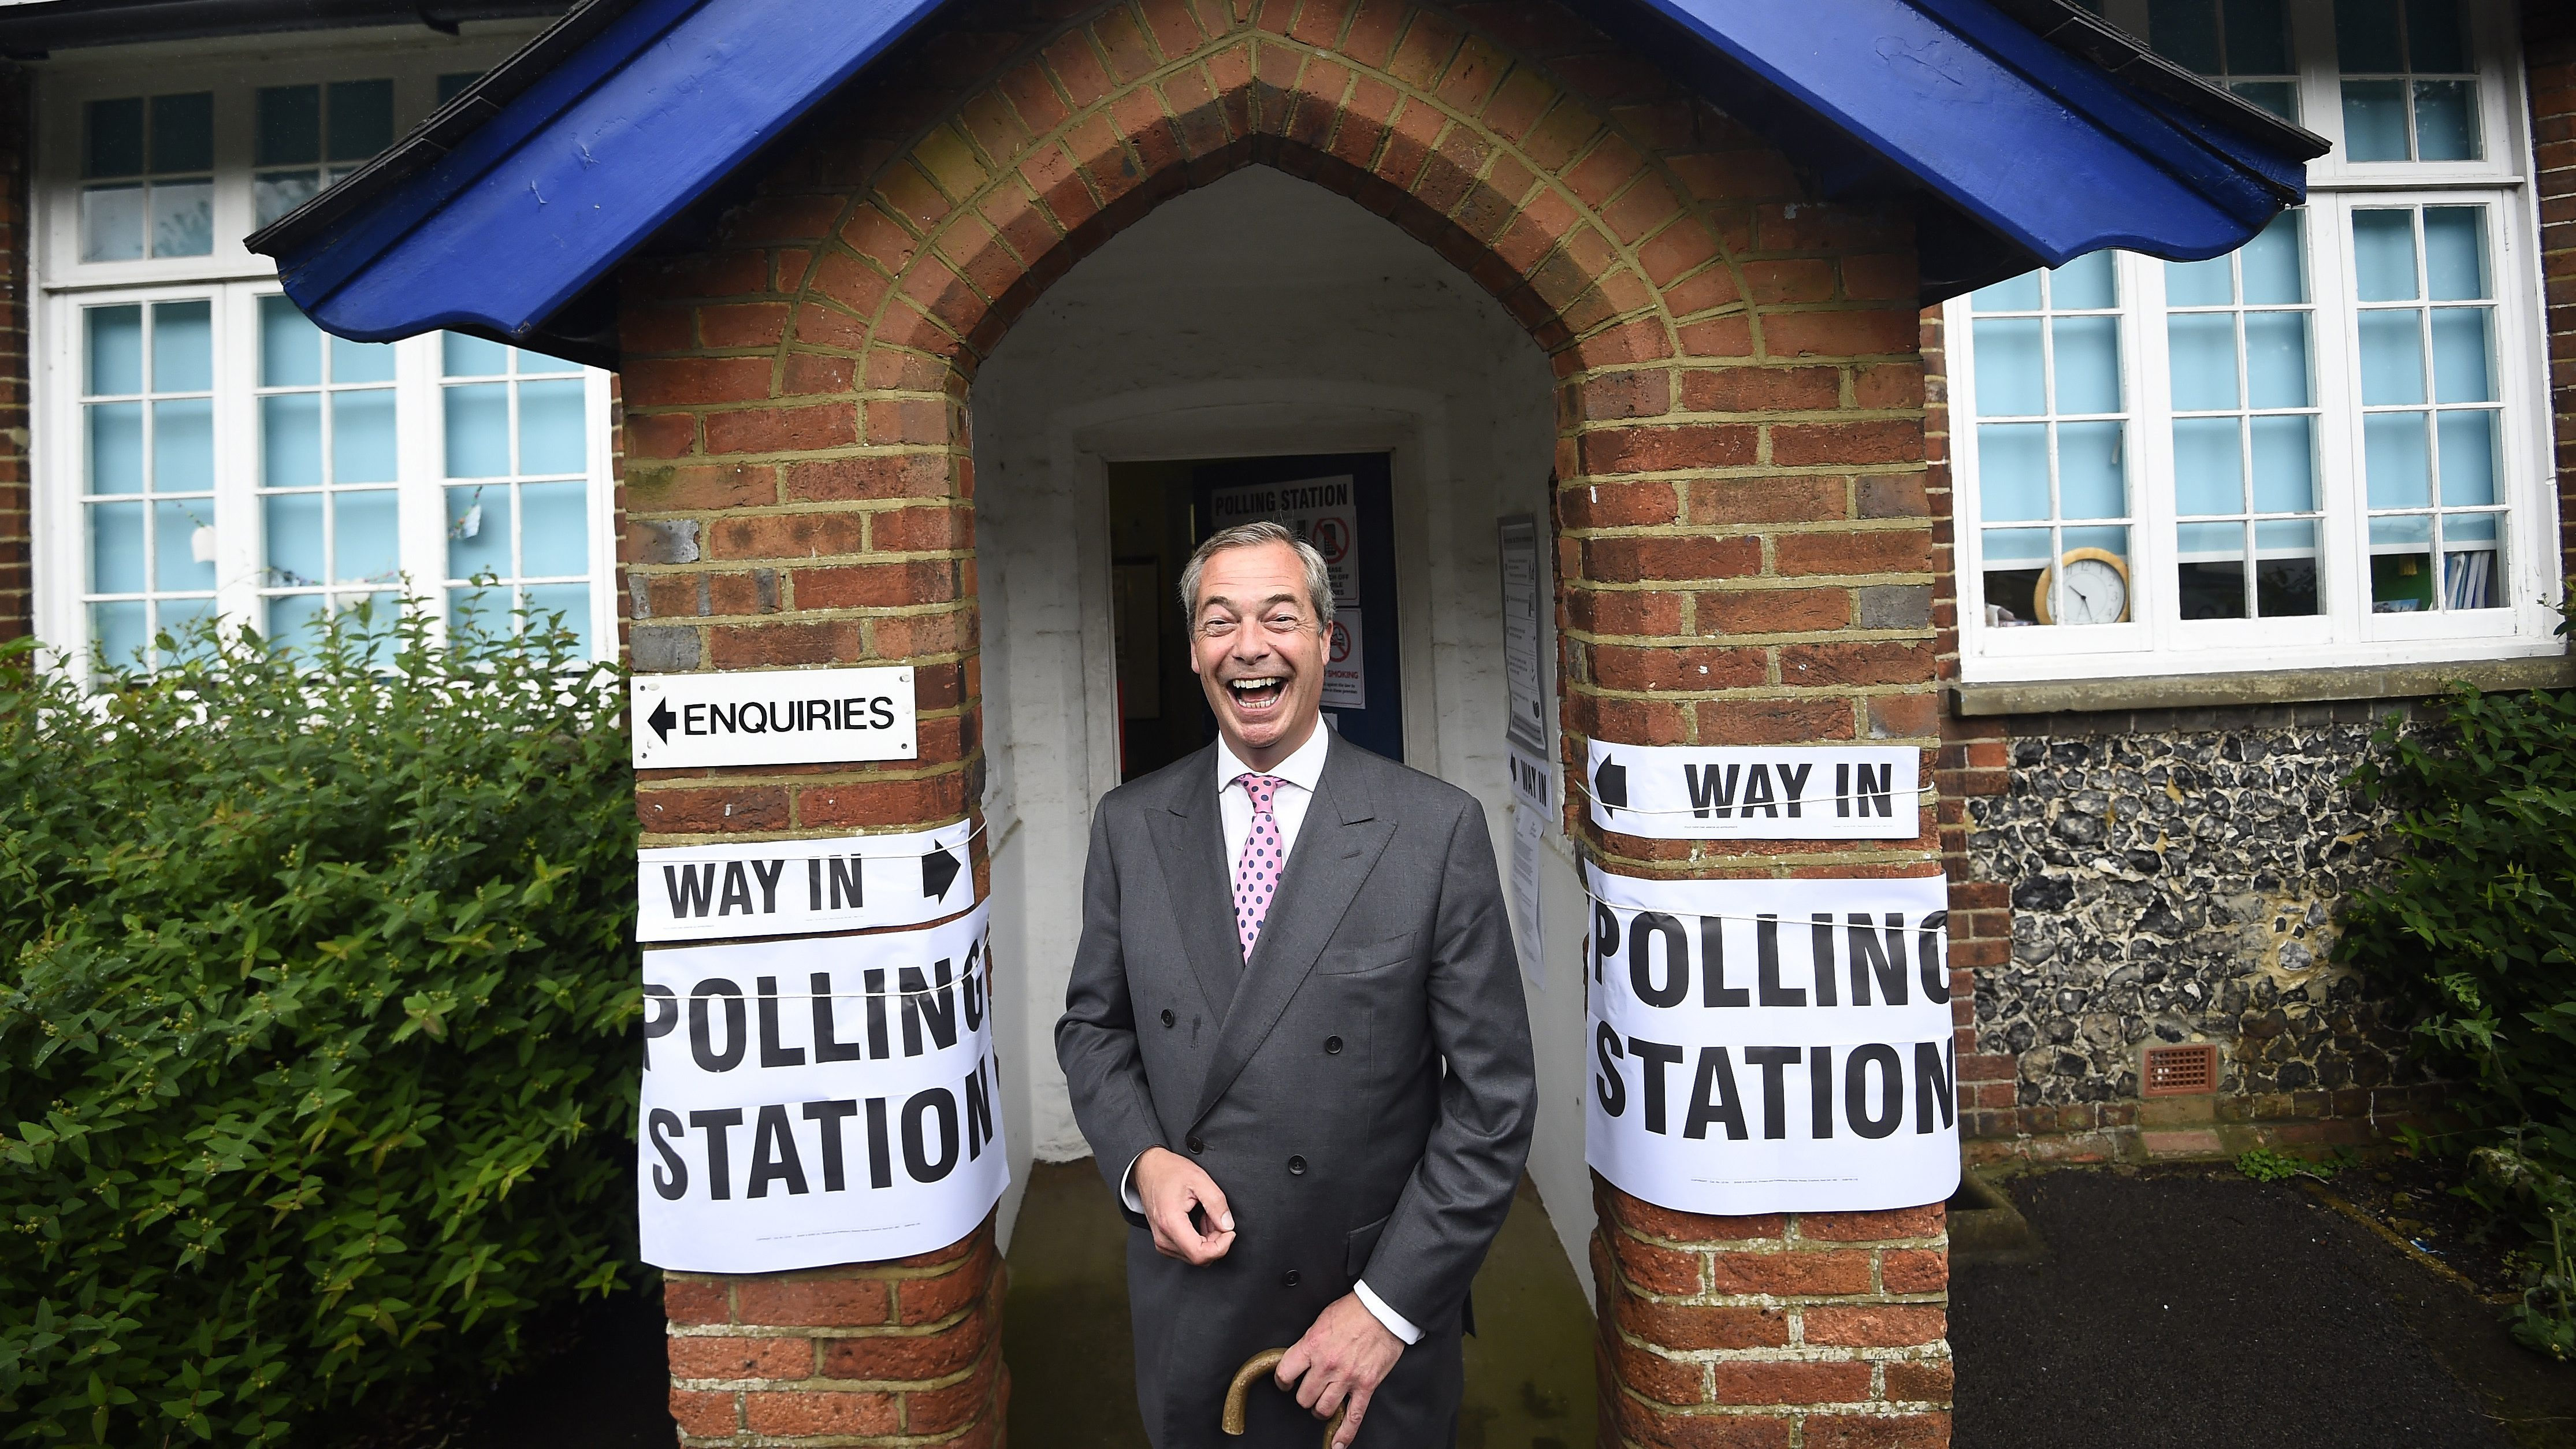 Nigel Farage, the leader of the United Kingdom Independence Party, arrives to vote in the EU referendum at a polling station in Biggin Hill